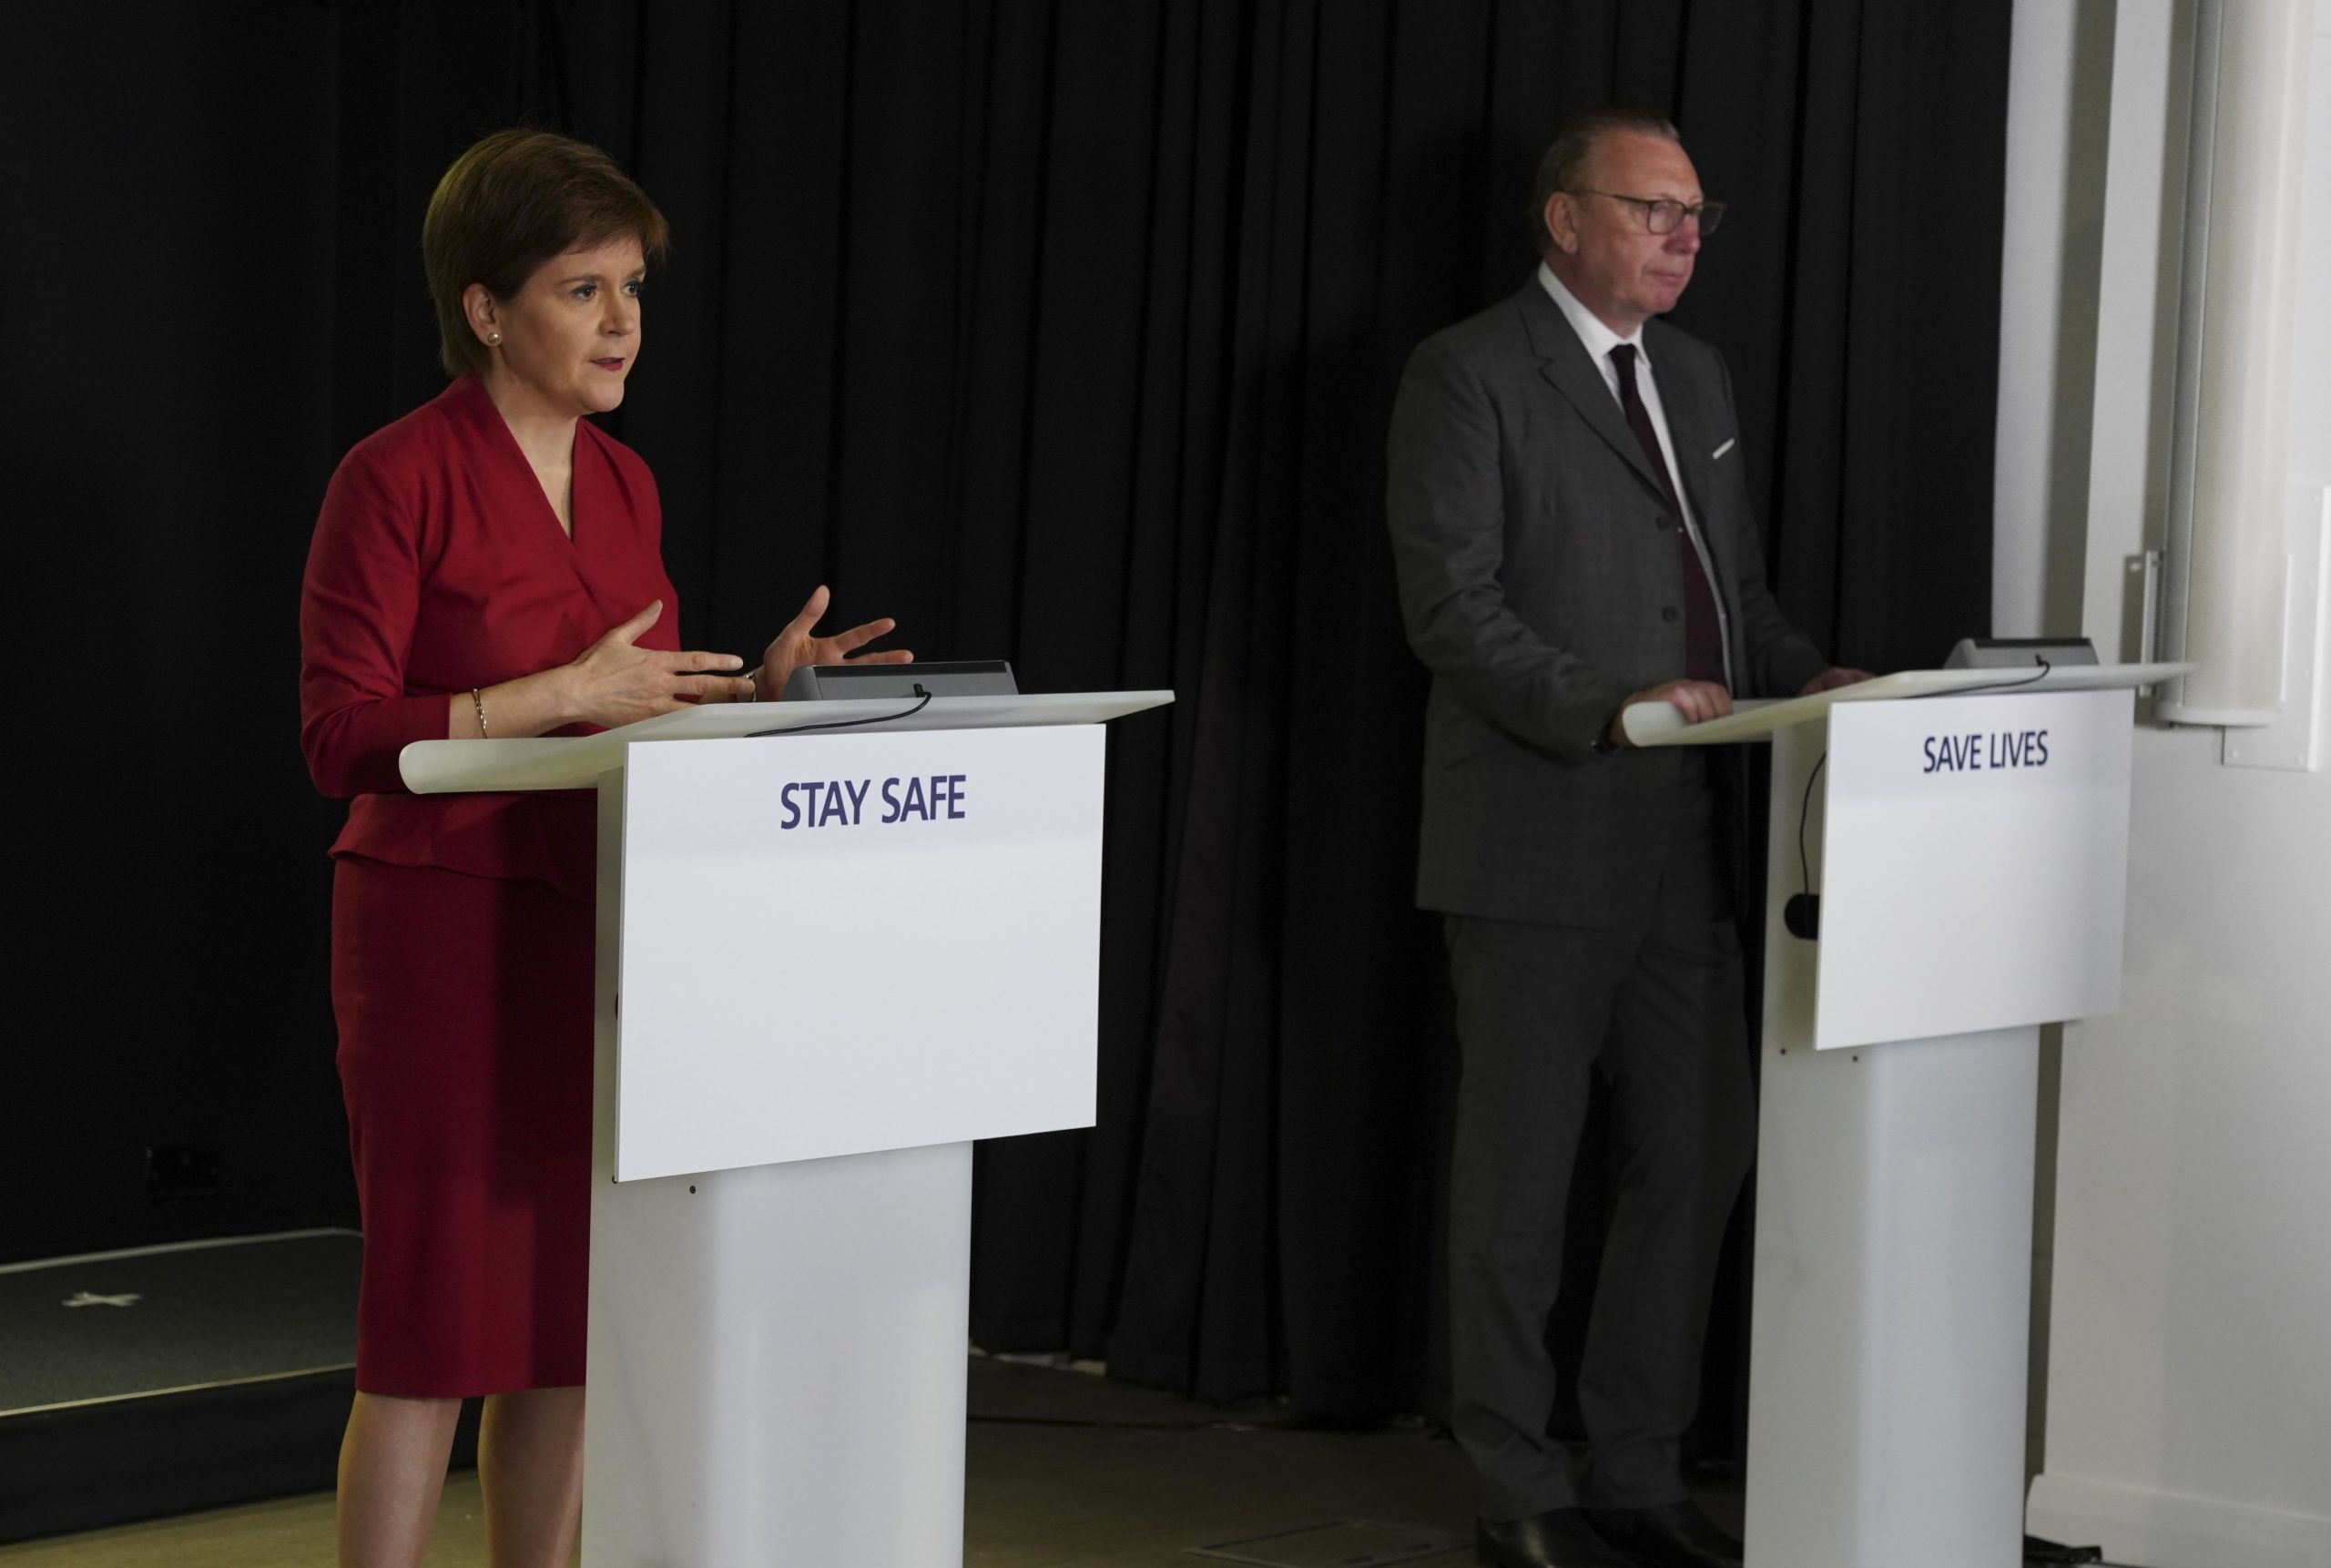 First Minister Nicola Sturgeon and Benny Higgins, former CEO of Tesco Bank.